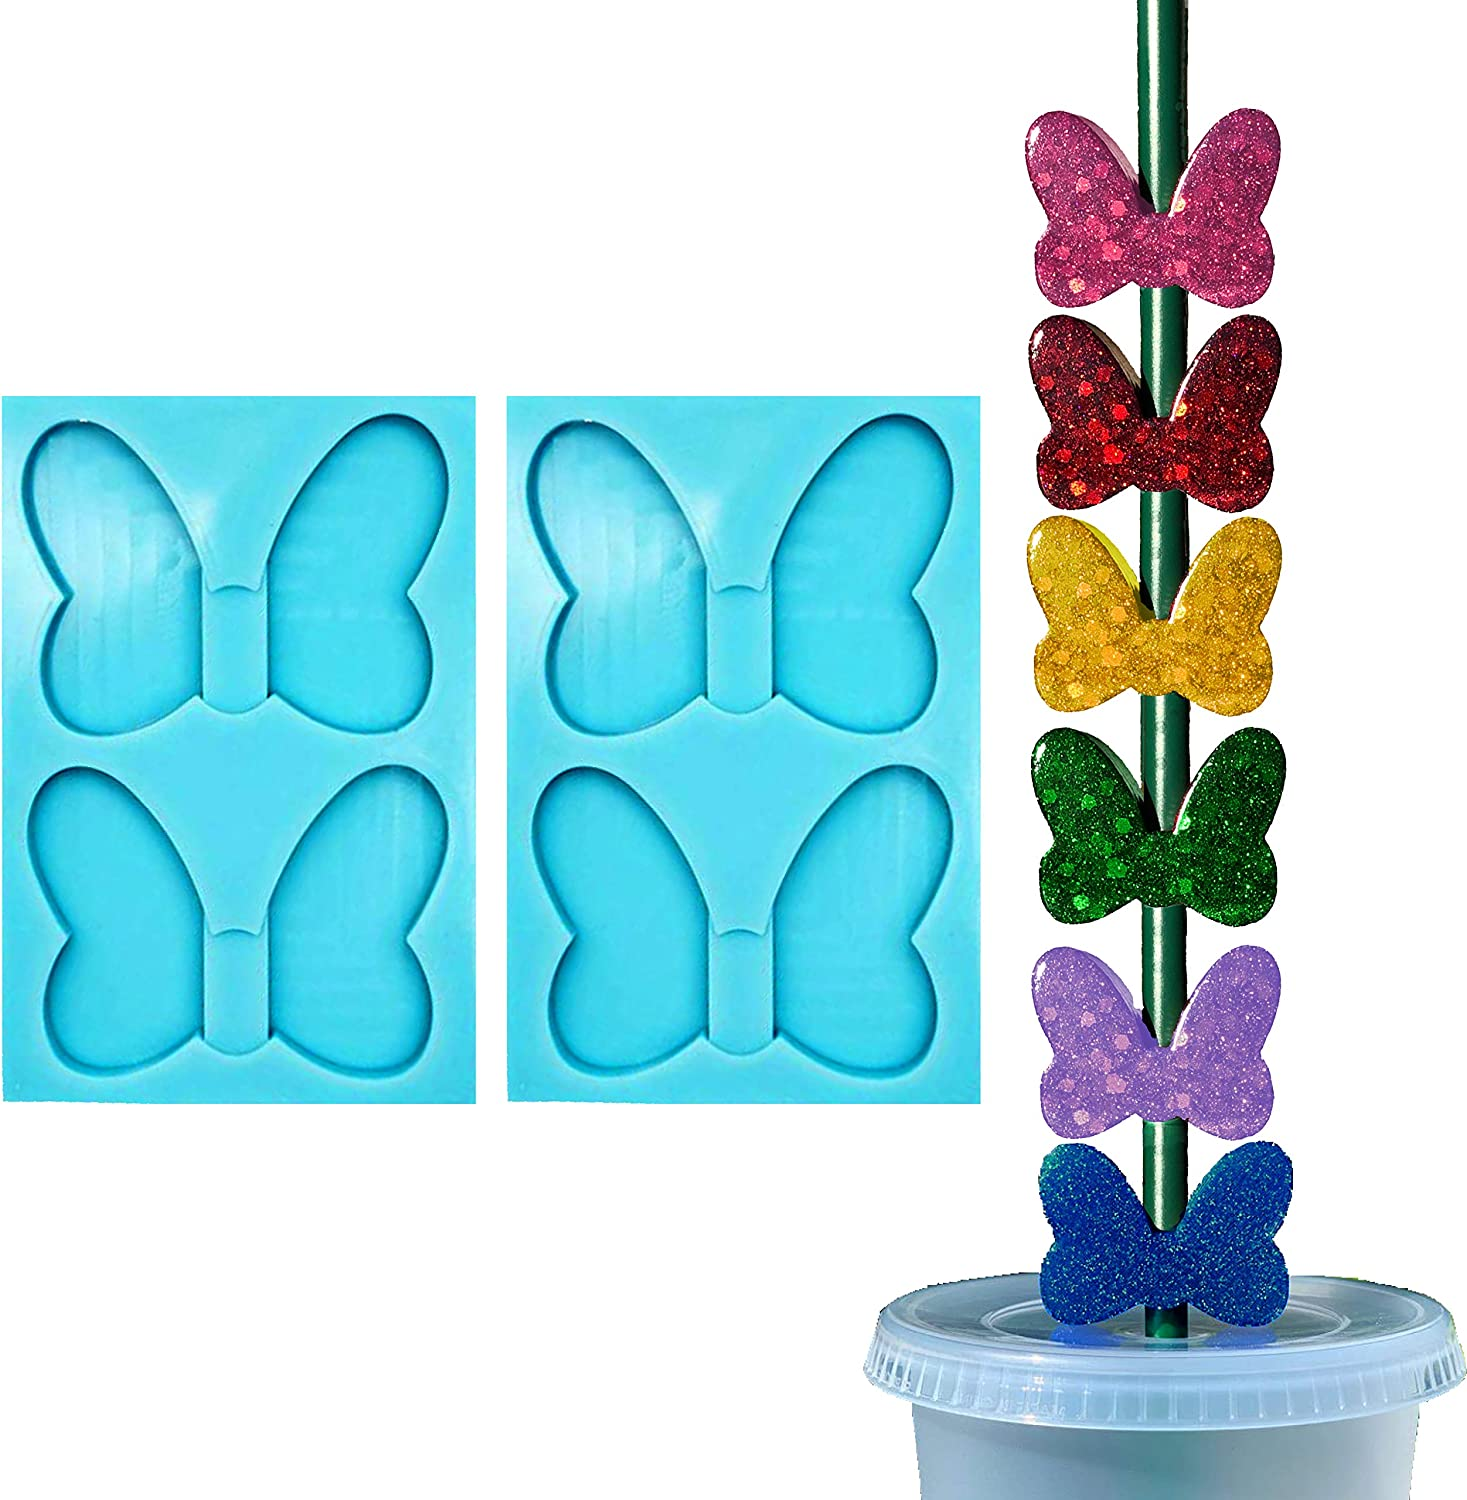 Butterfly Bow Max 56% OFF Straw Topper Silicone Mold Pieces 2 for Omaha Mall Re Epoxy